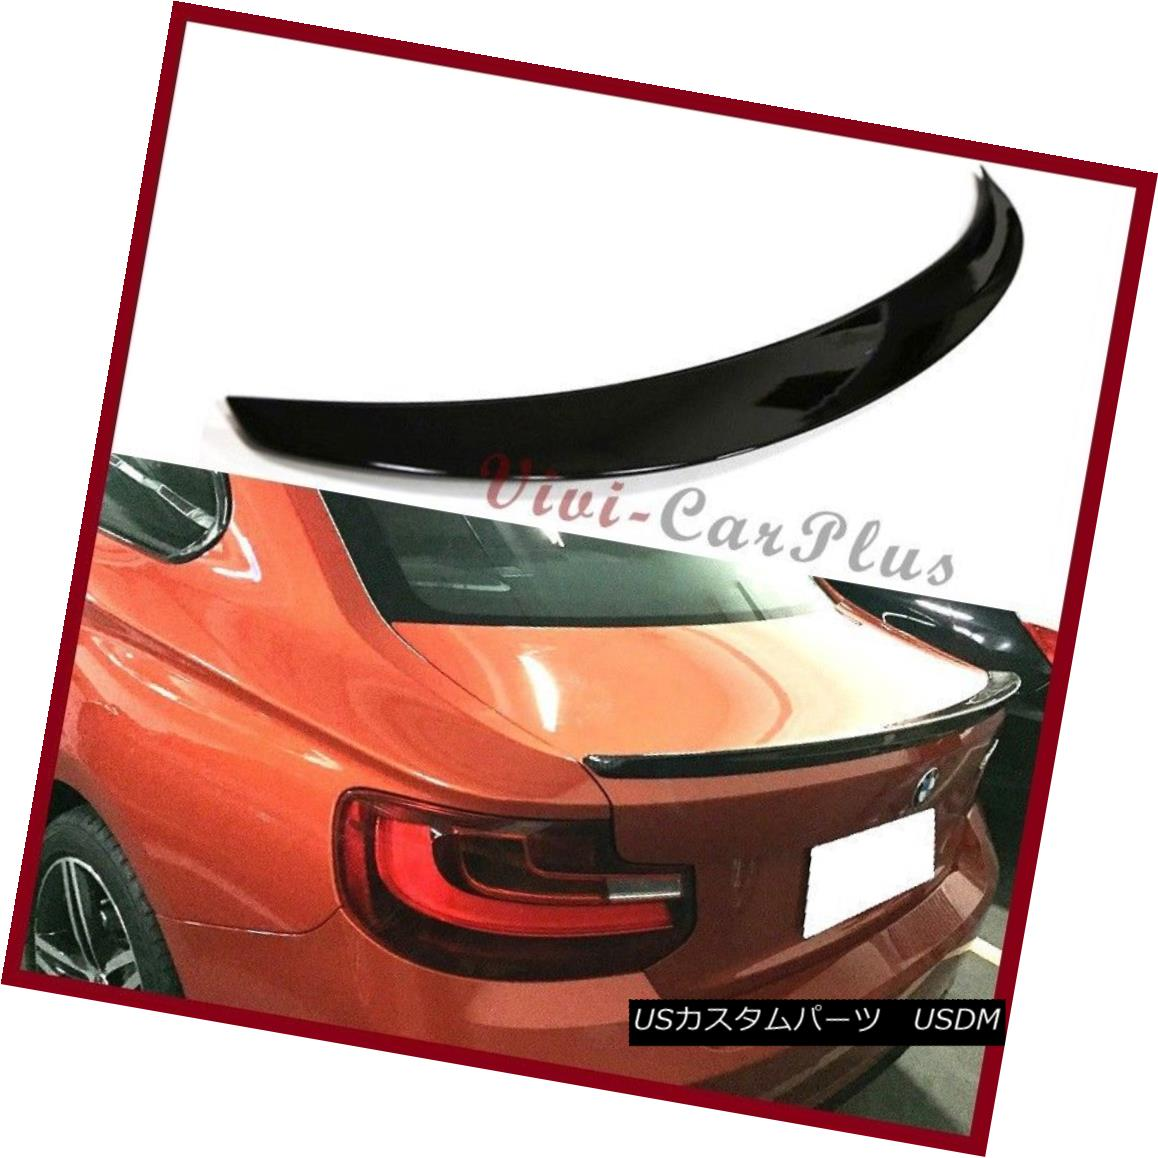 エアロパーツ 2014 2016 BMW F22 Performance Tail For 228i M235i Coupe PAINTED Rear Spoiler Lip 2014 2016 BMW F22パフォーマンステール228i M235iクーペPAINTEDリアスポイラーリップ